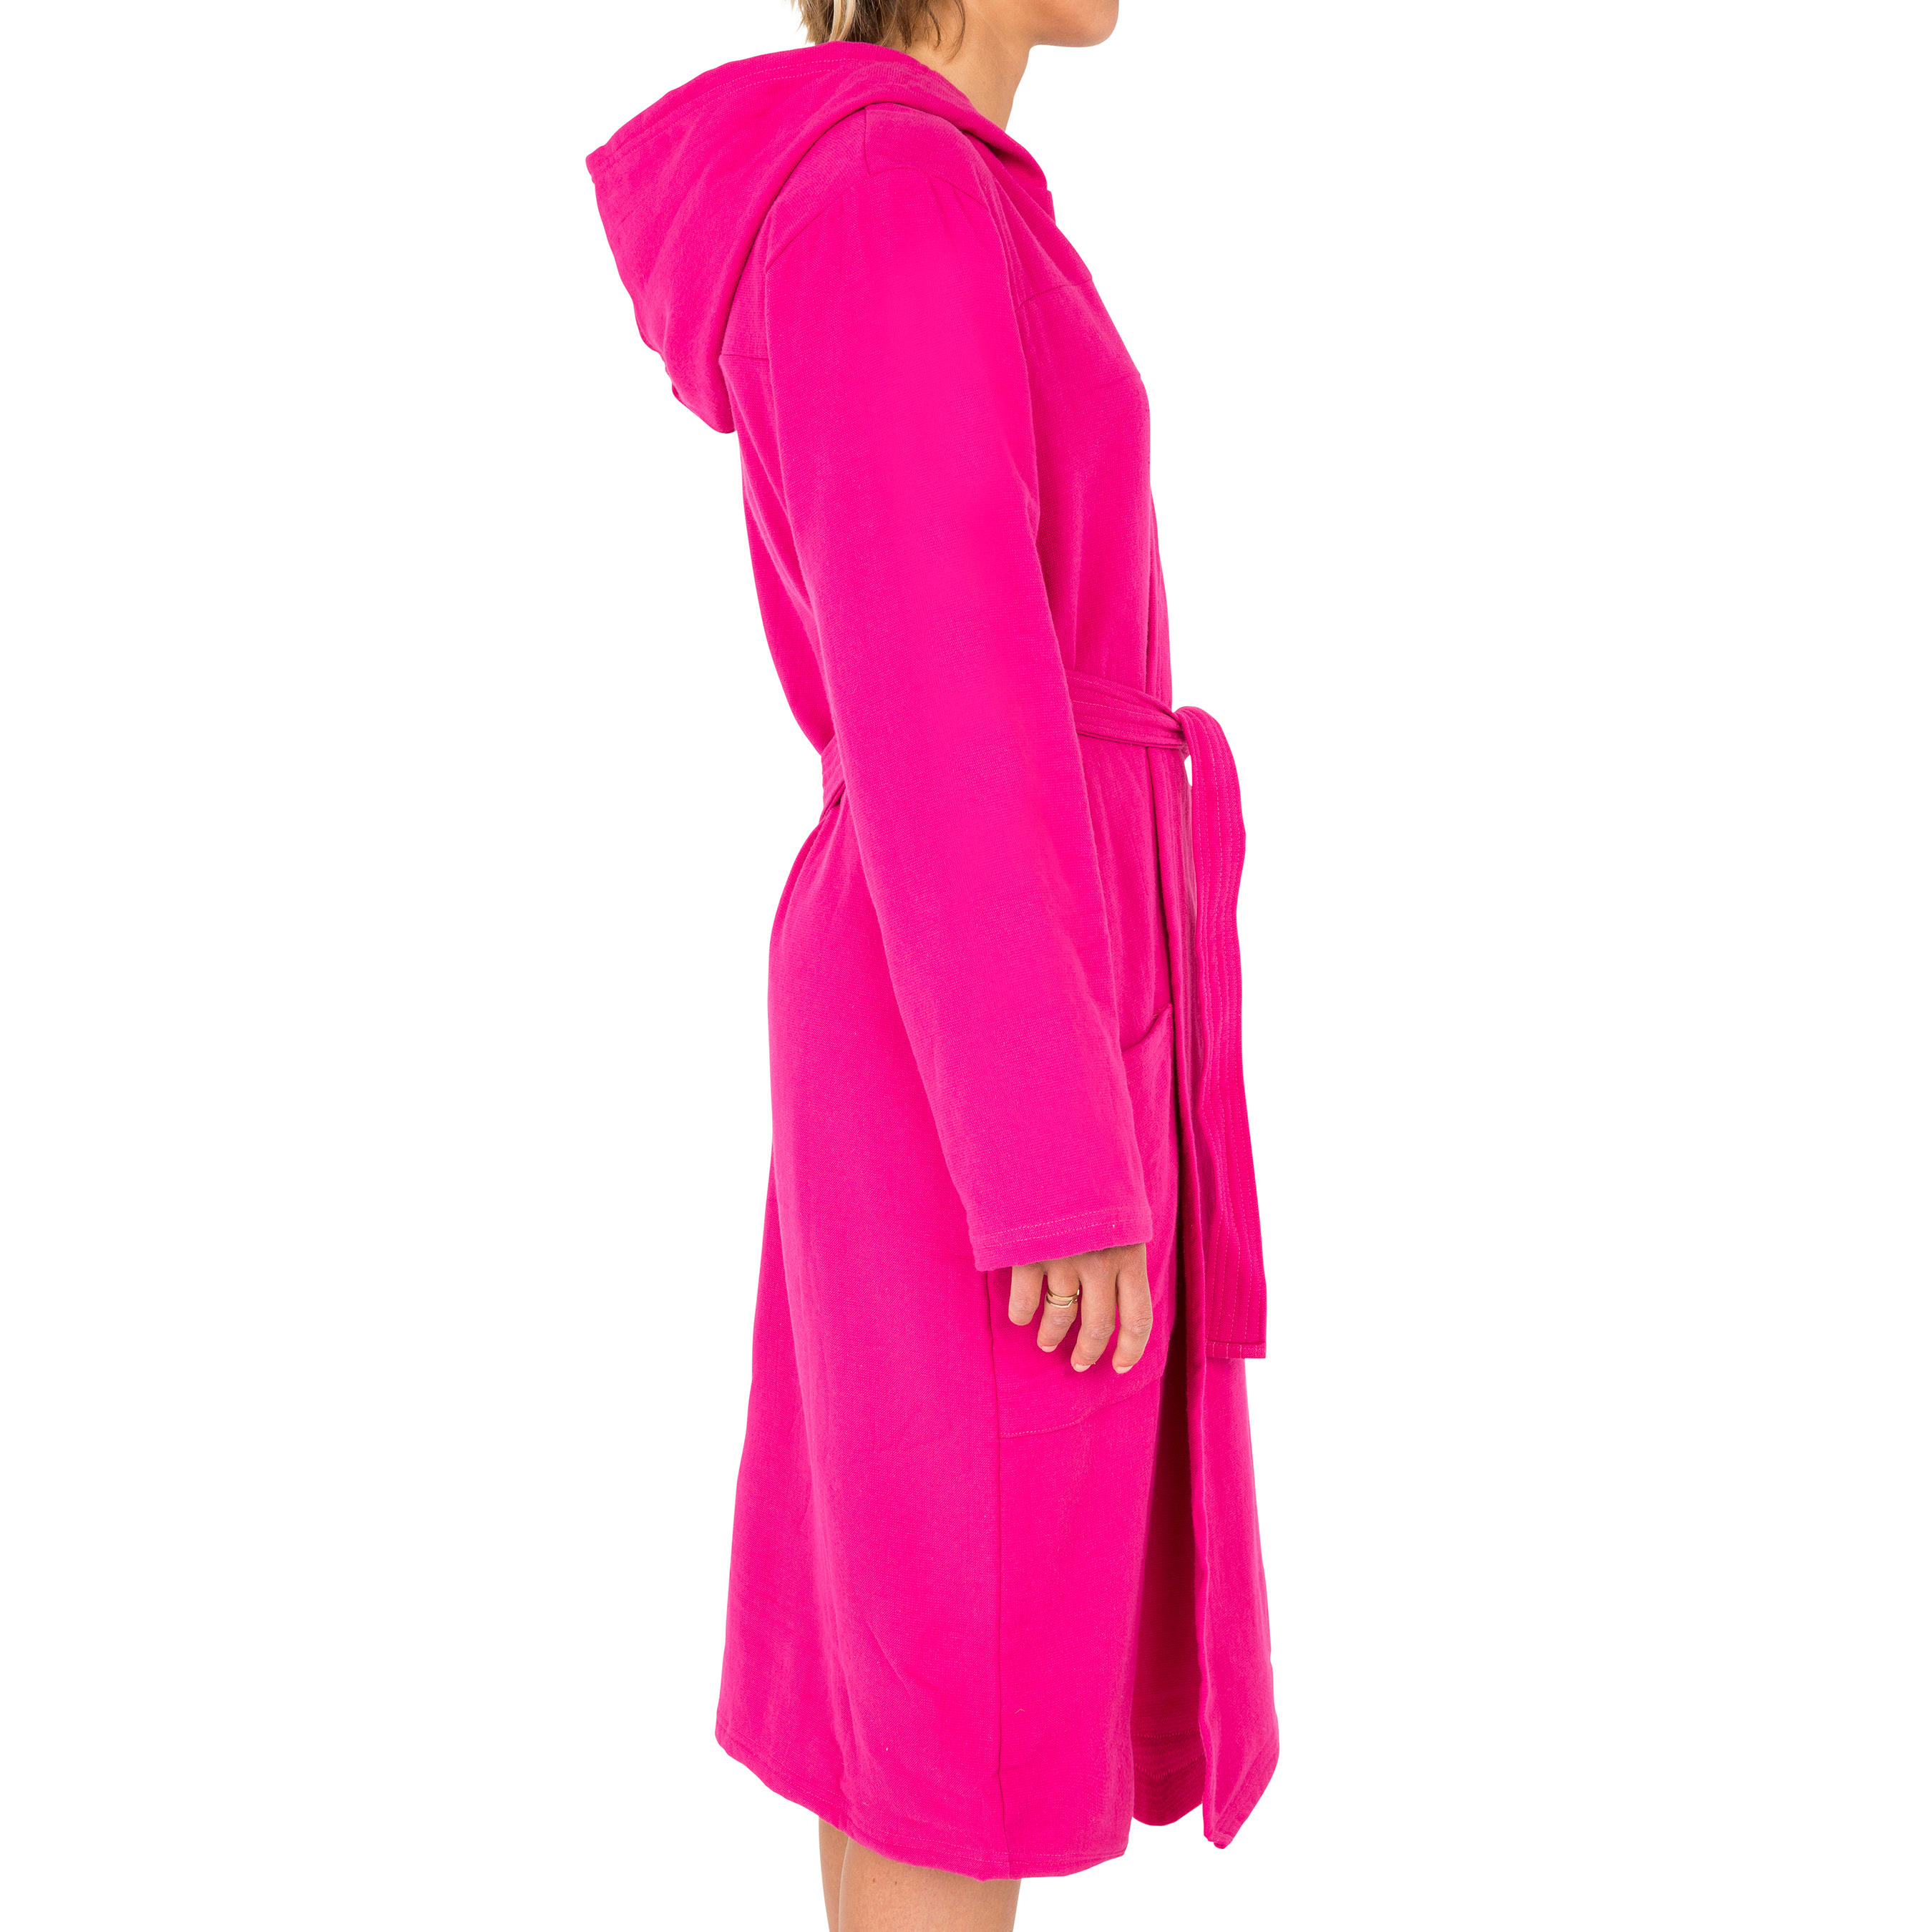 Pink Women's Lightweight Cotton Pool Bathrobe with Hood and Belt